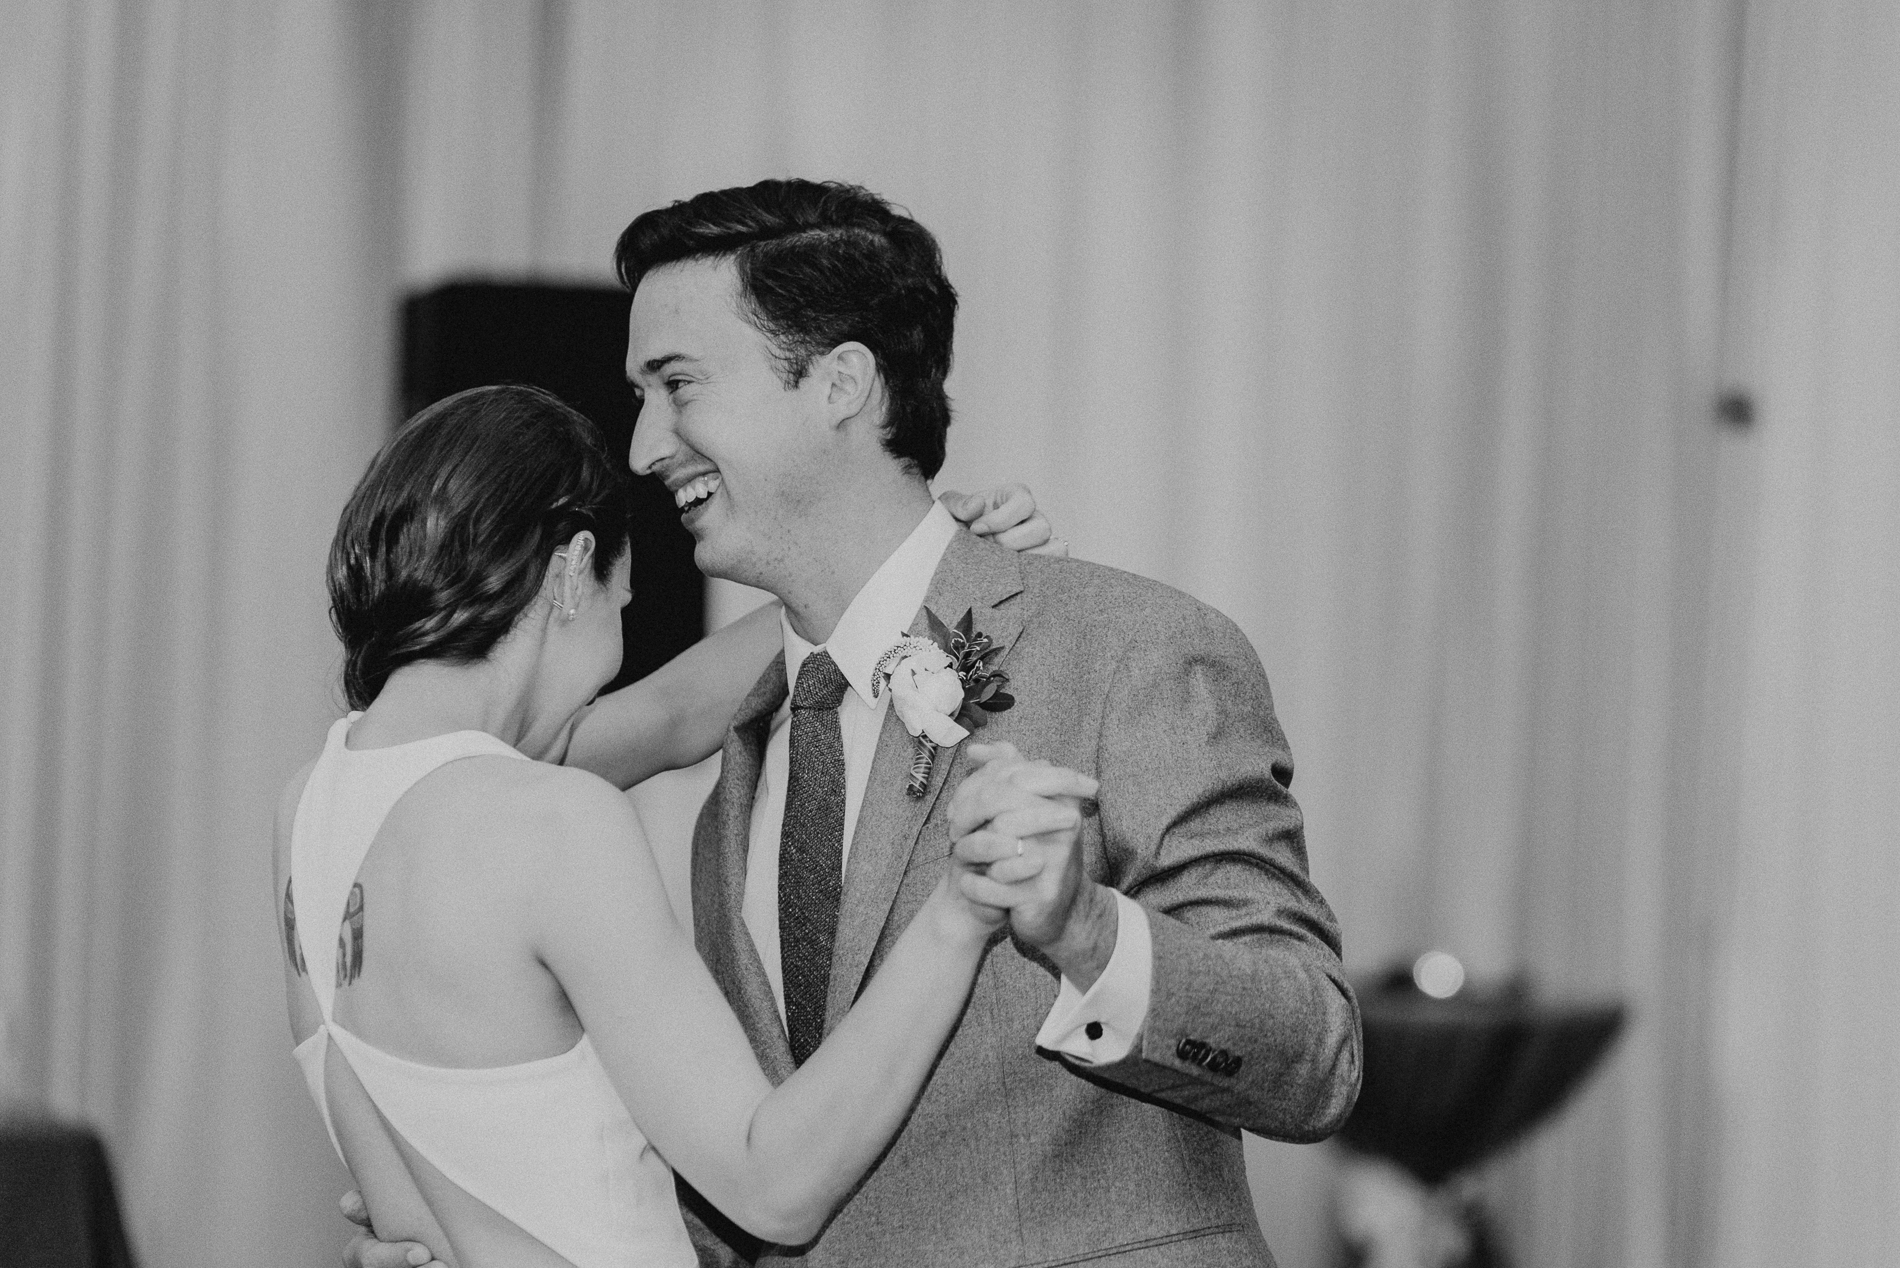 gabi and campbell east nashville wedding at riverwood mansion by wilde company-42.jpg